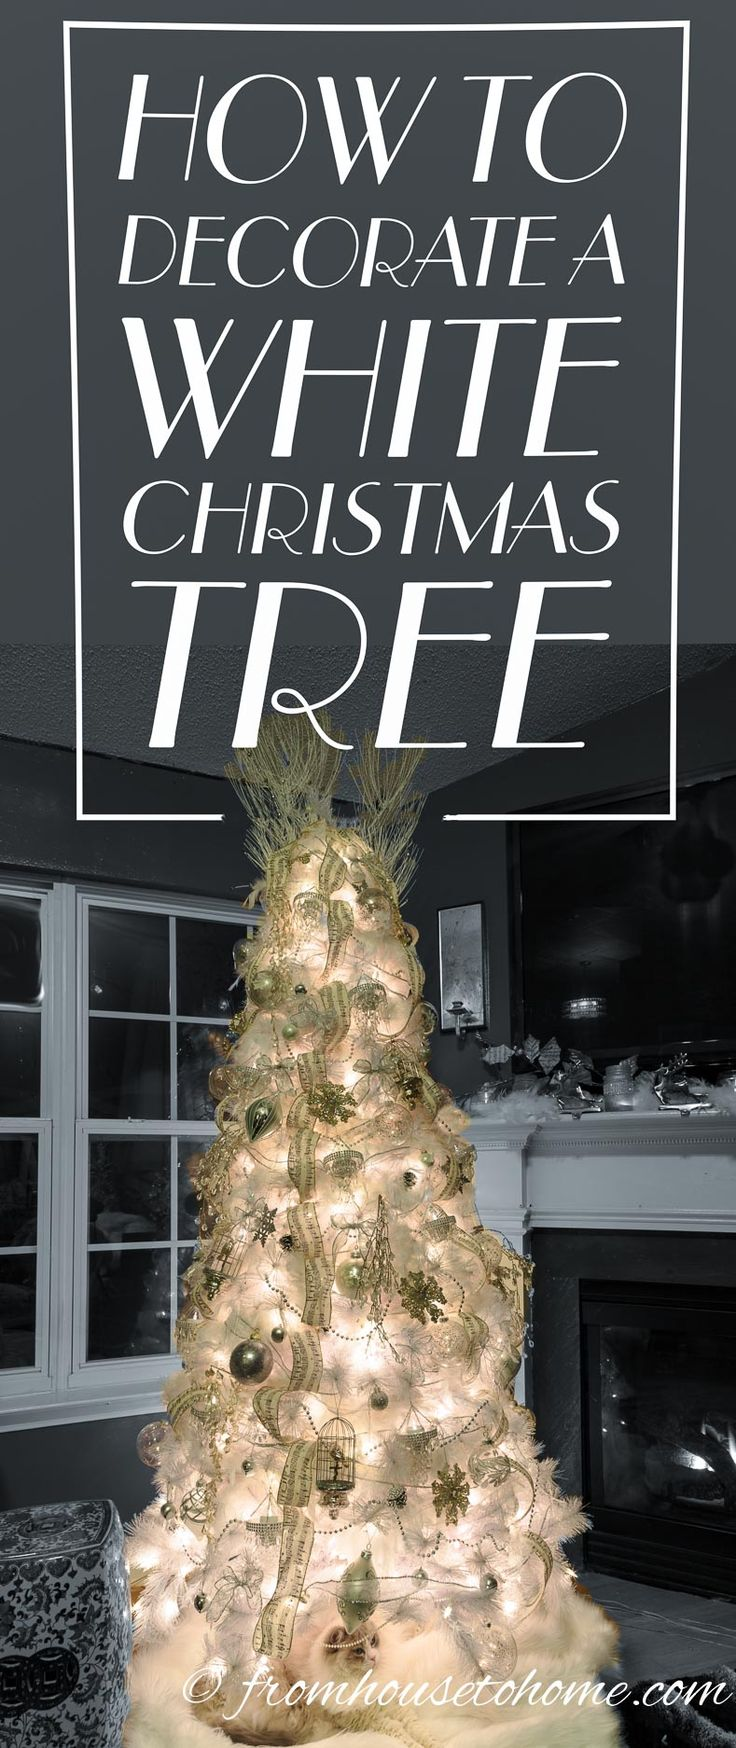 53 best Christmas tree themes images on Pinterest | Christmas trees ...